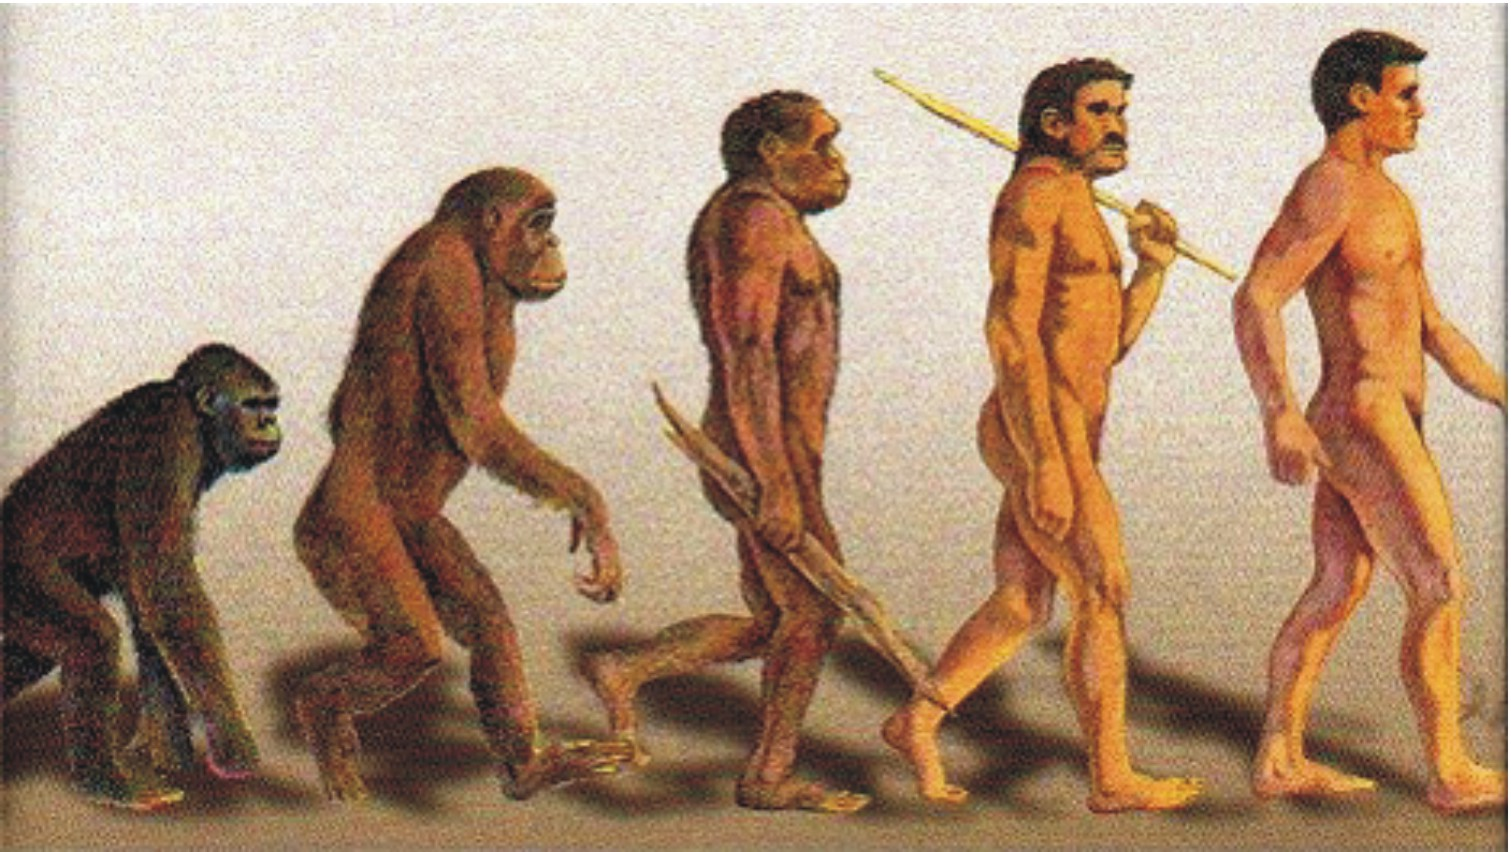 Evolution Monkey to Human